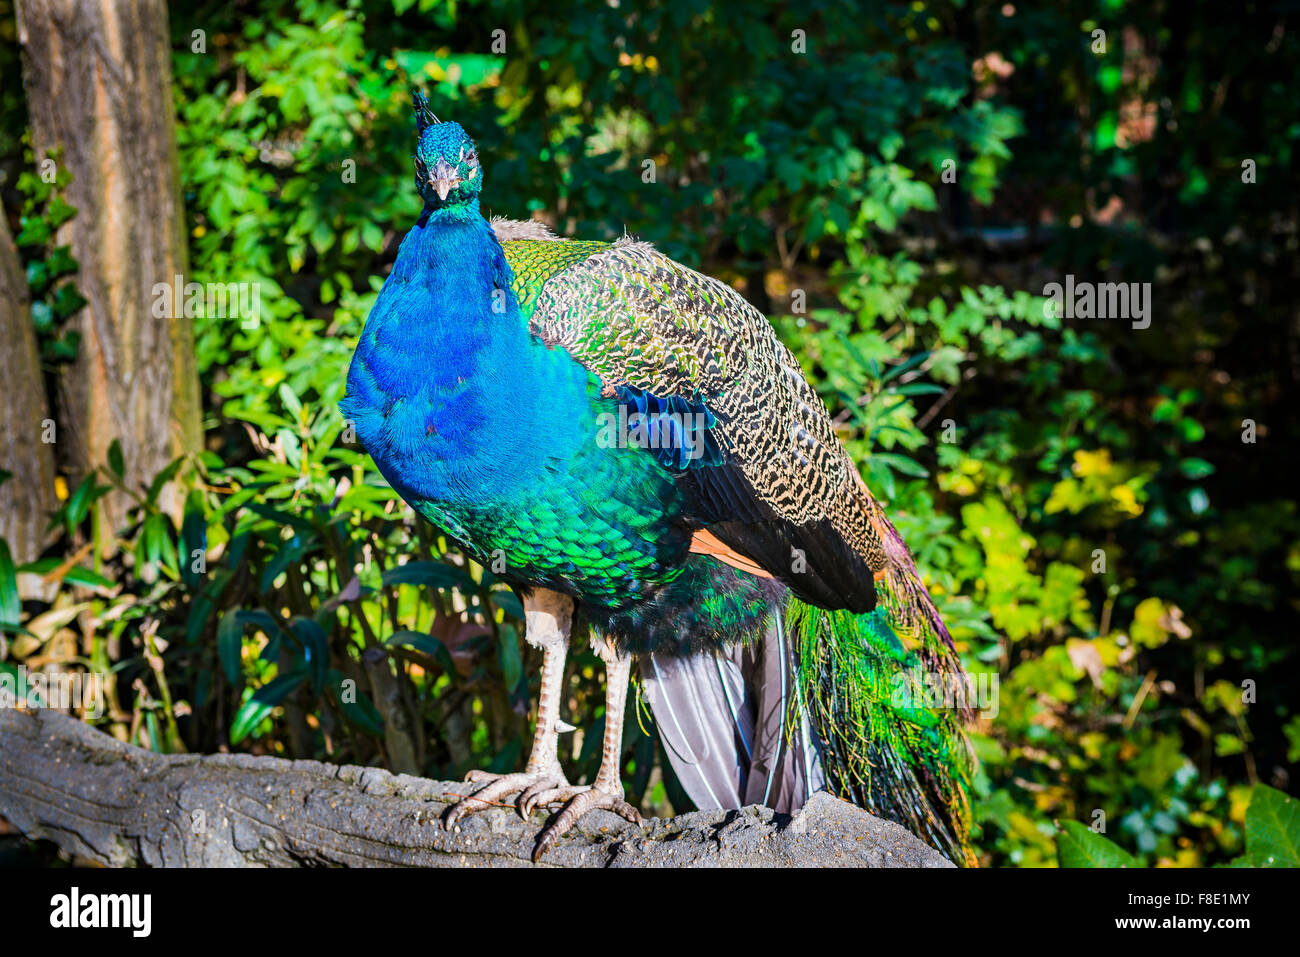 Peafowl. The 'Campo Grande' is a large public park located in the heart of the city of Valladolid. Castile - Stock Image